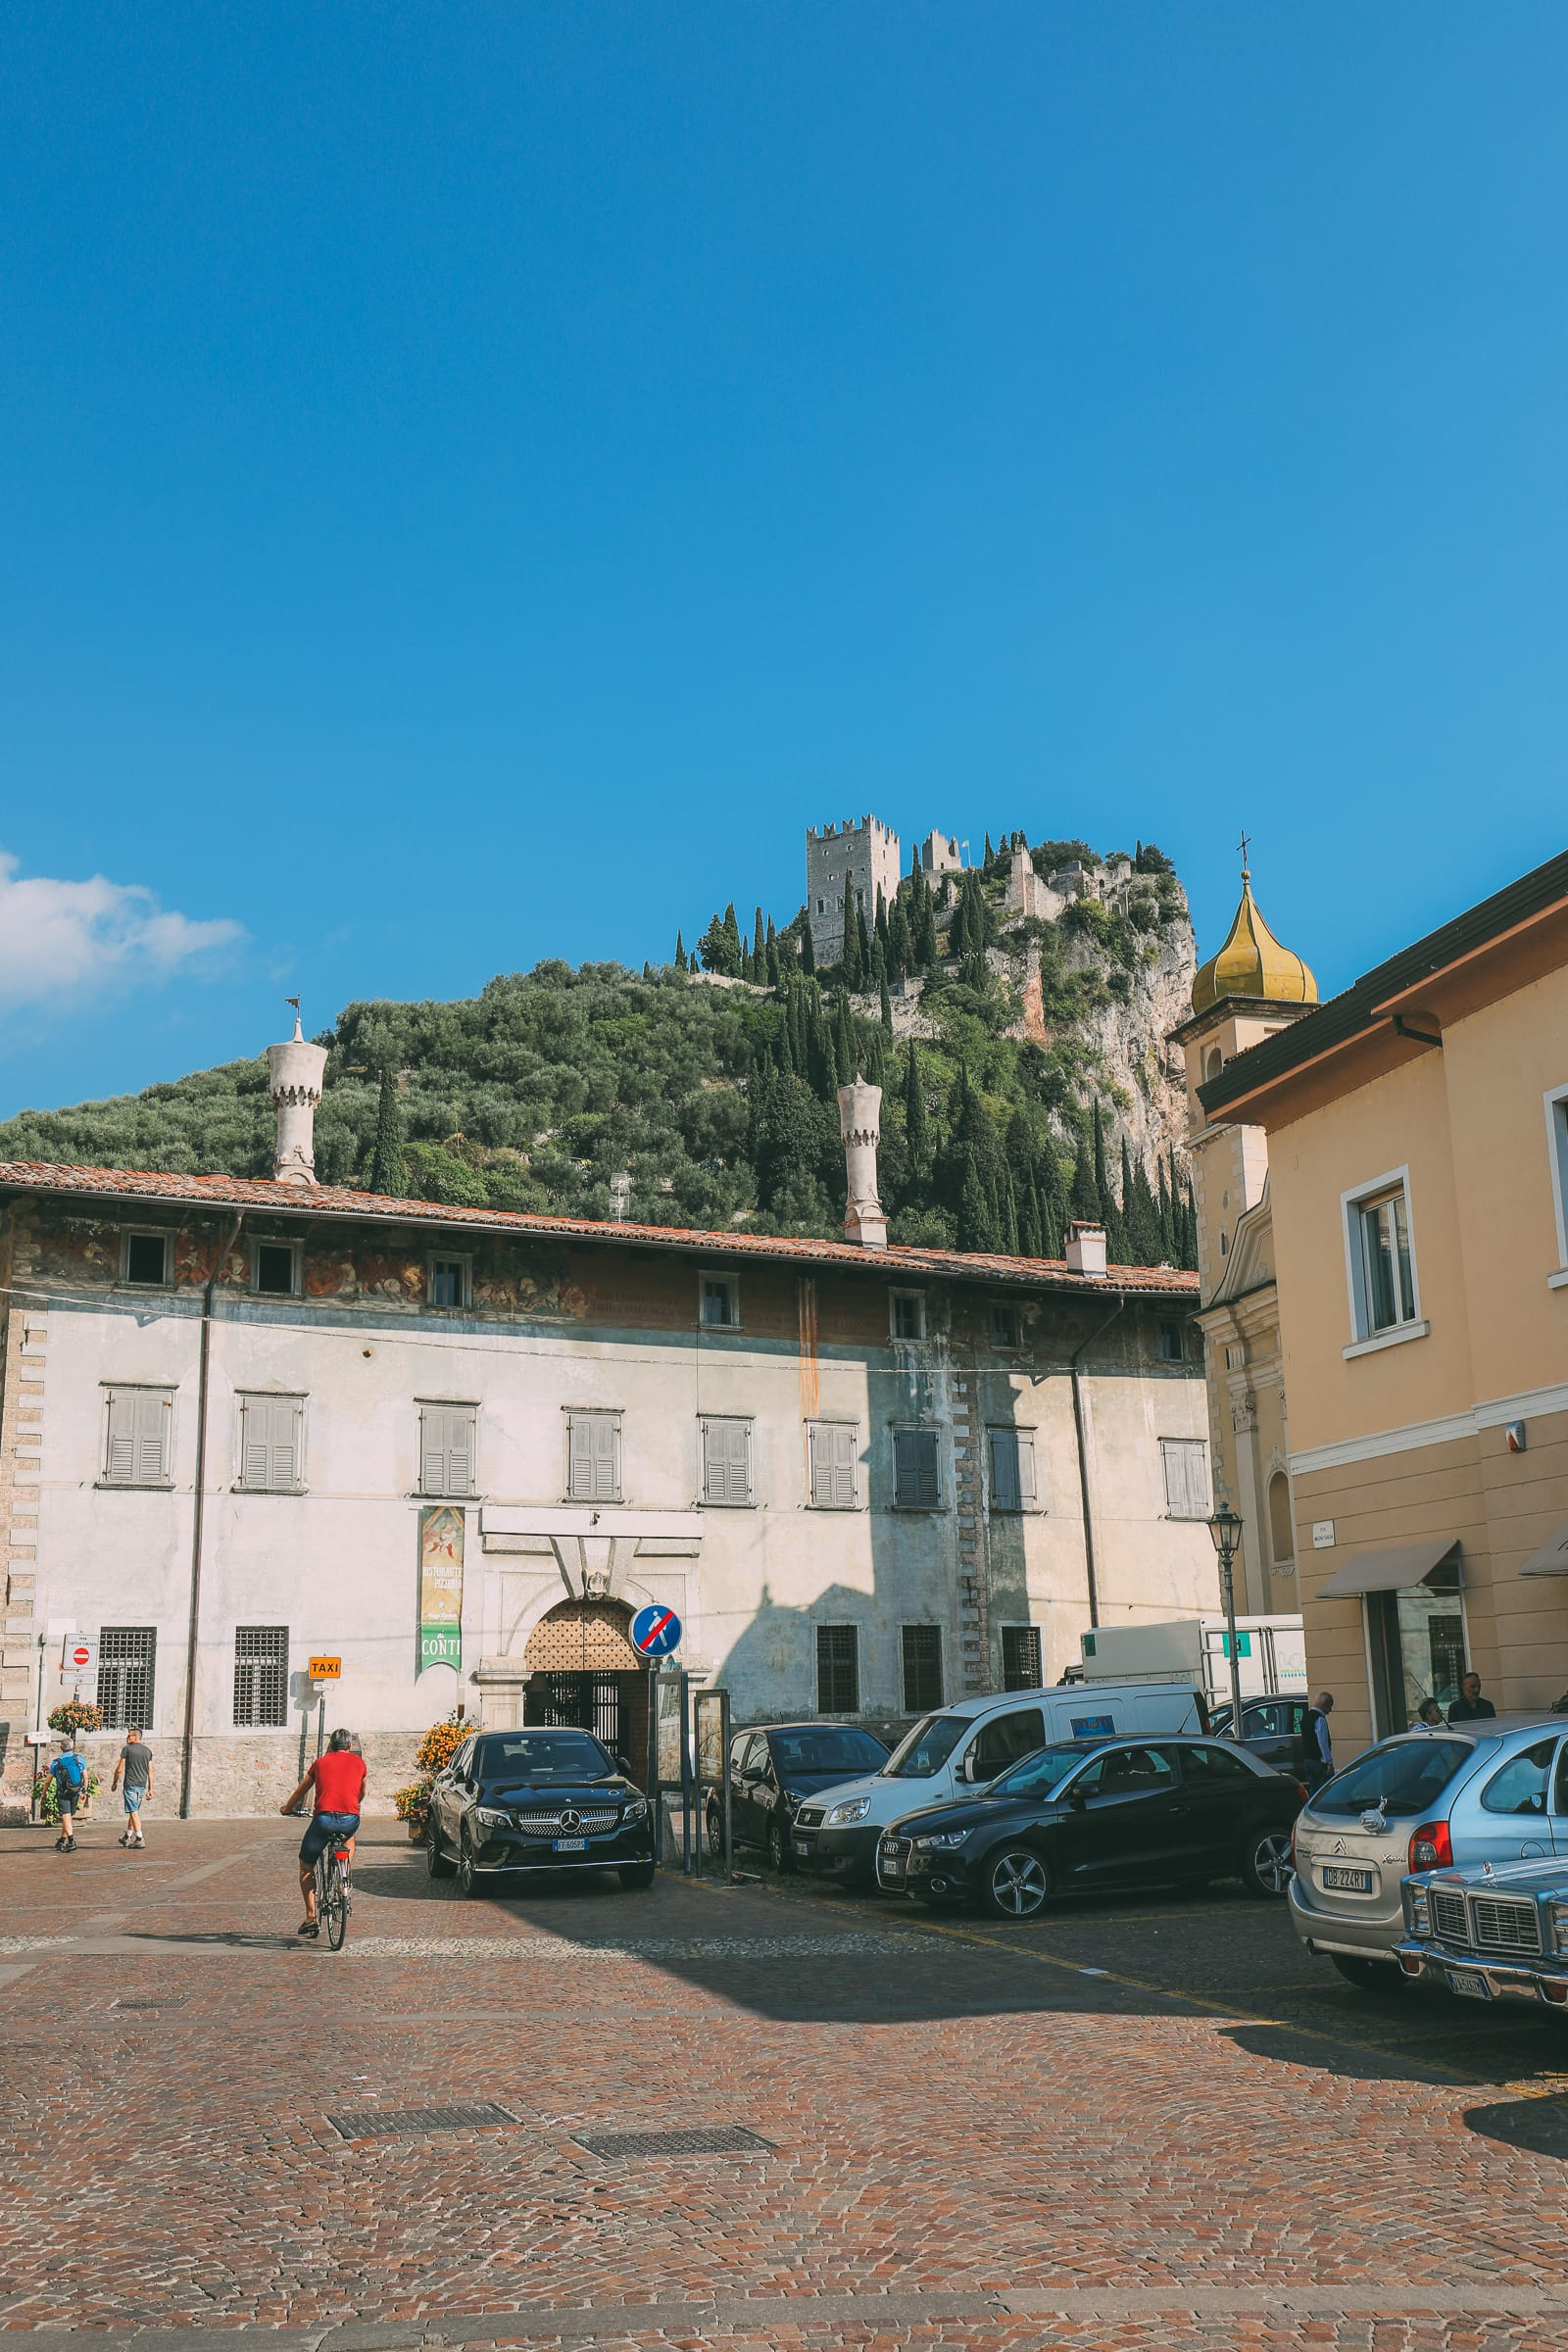 A Trip To One Of The Most Beautiful Parts Of Italy - Garda Trentino (9)